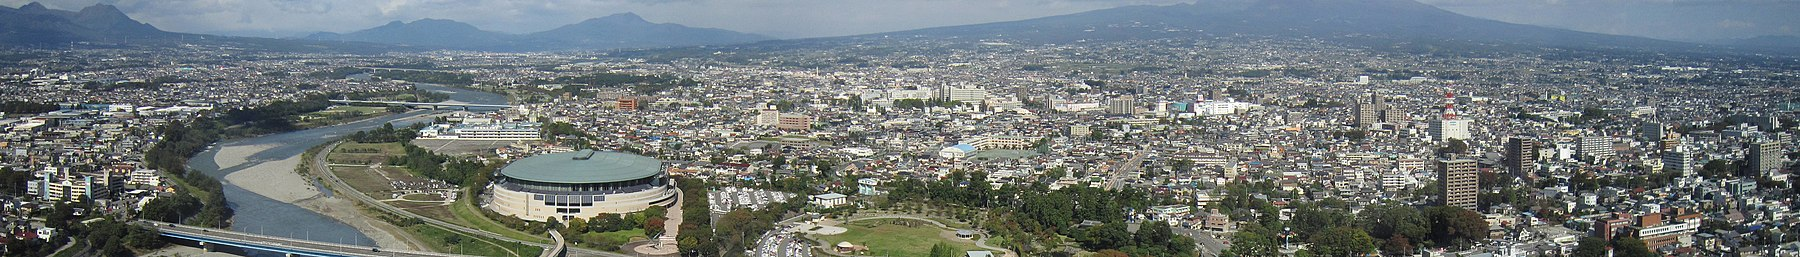 View from Gunma Prefectural Government Building north in Maebashi Gunma prefecture Wikivoyage banner.jpg